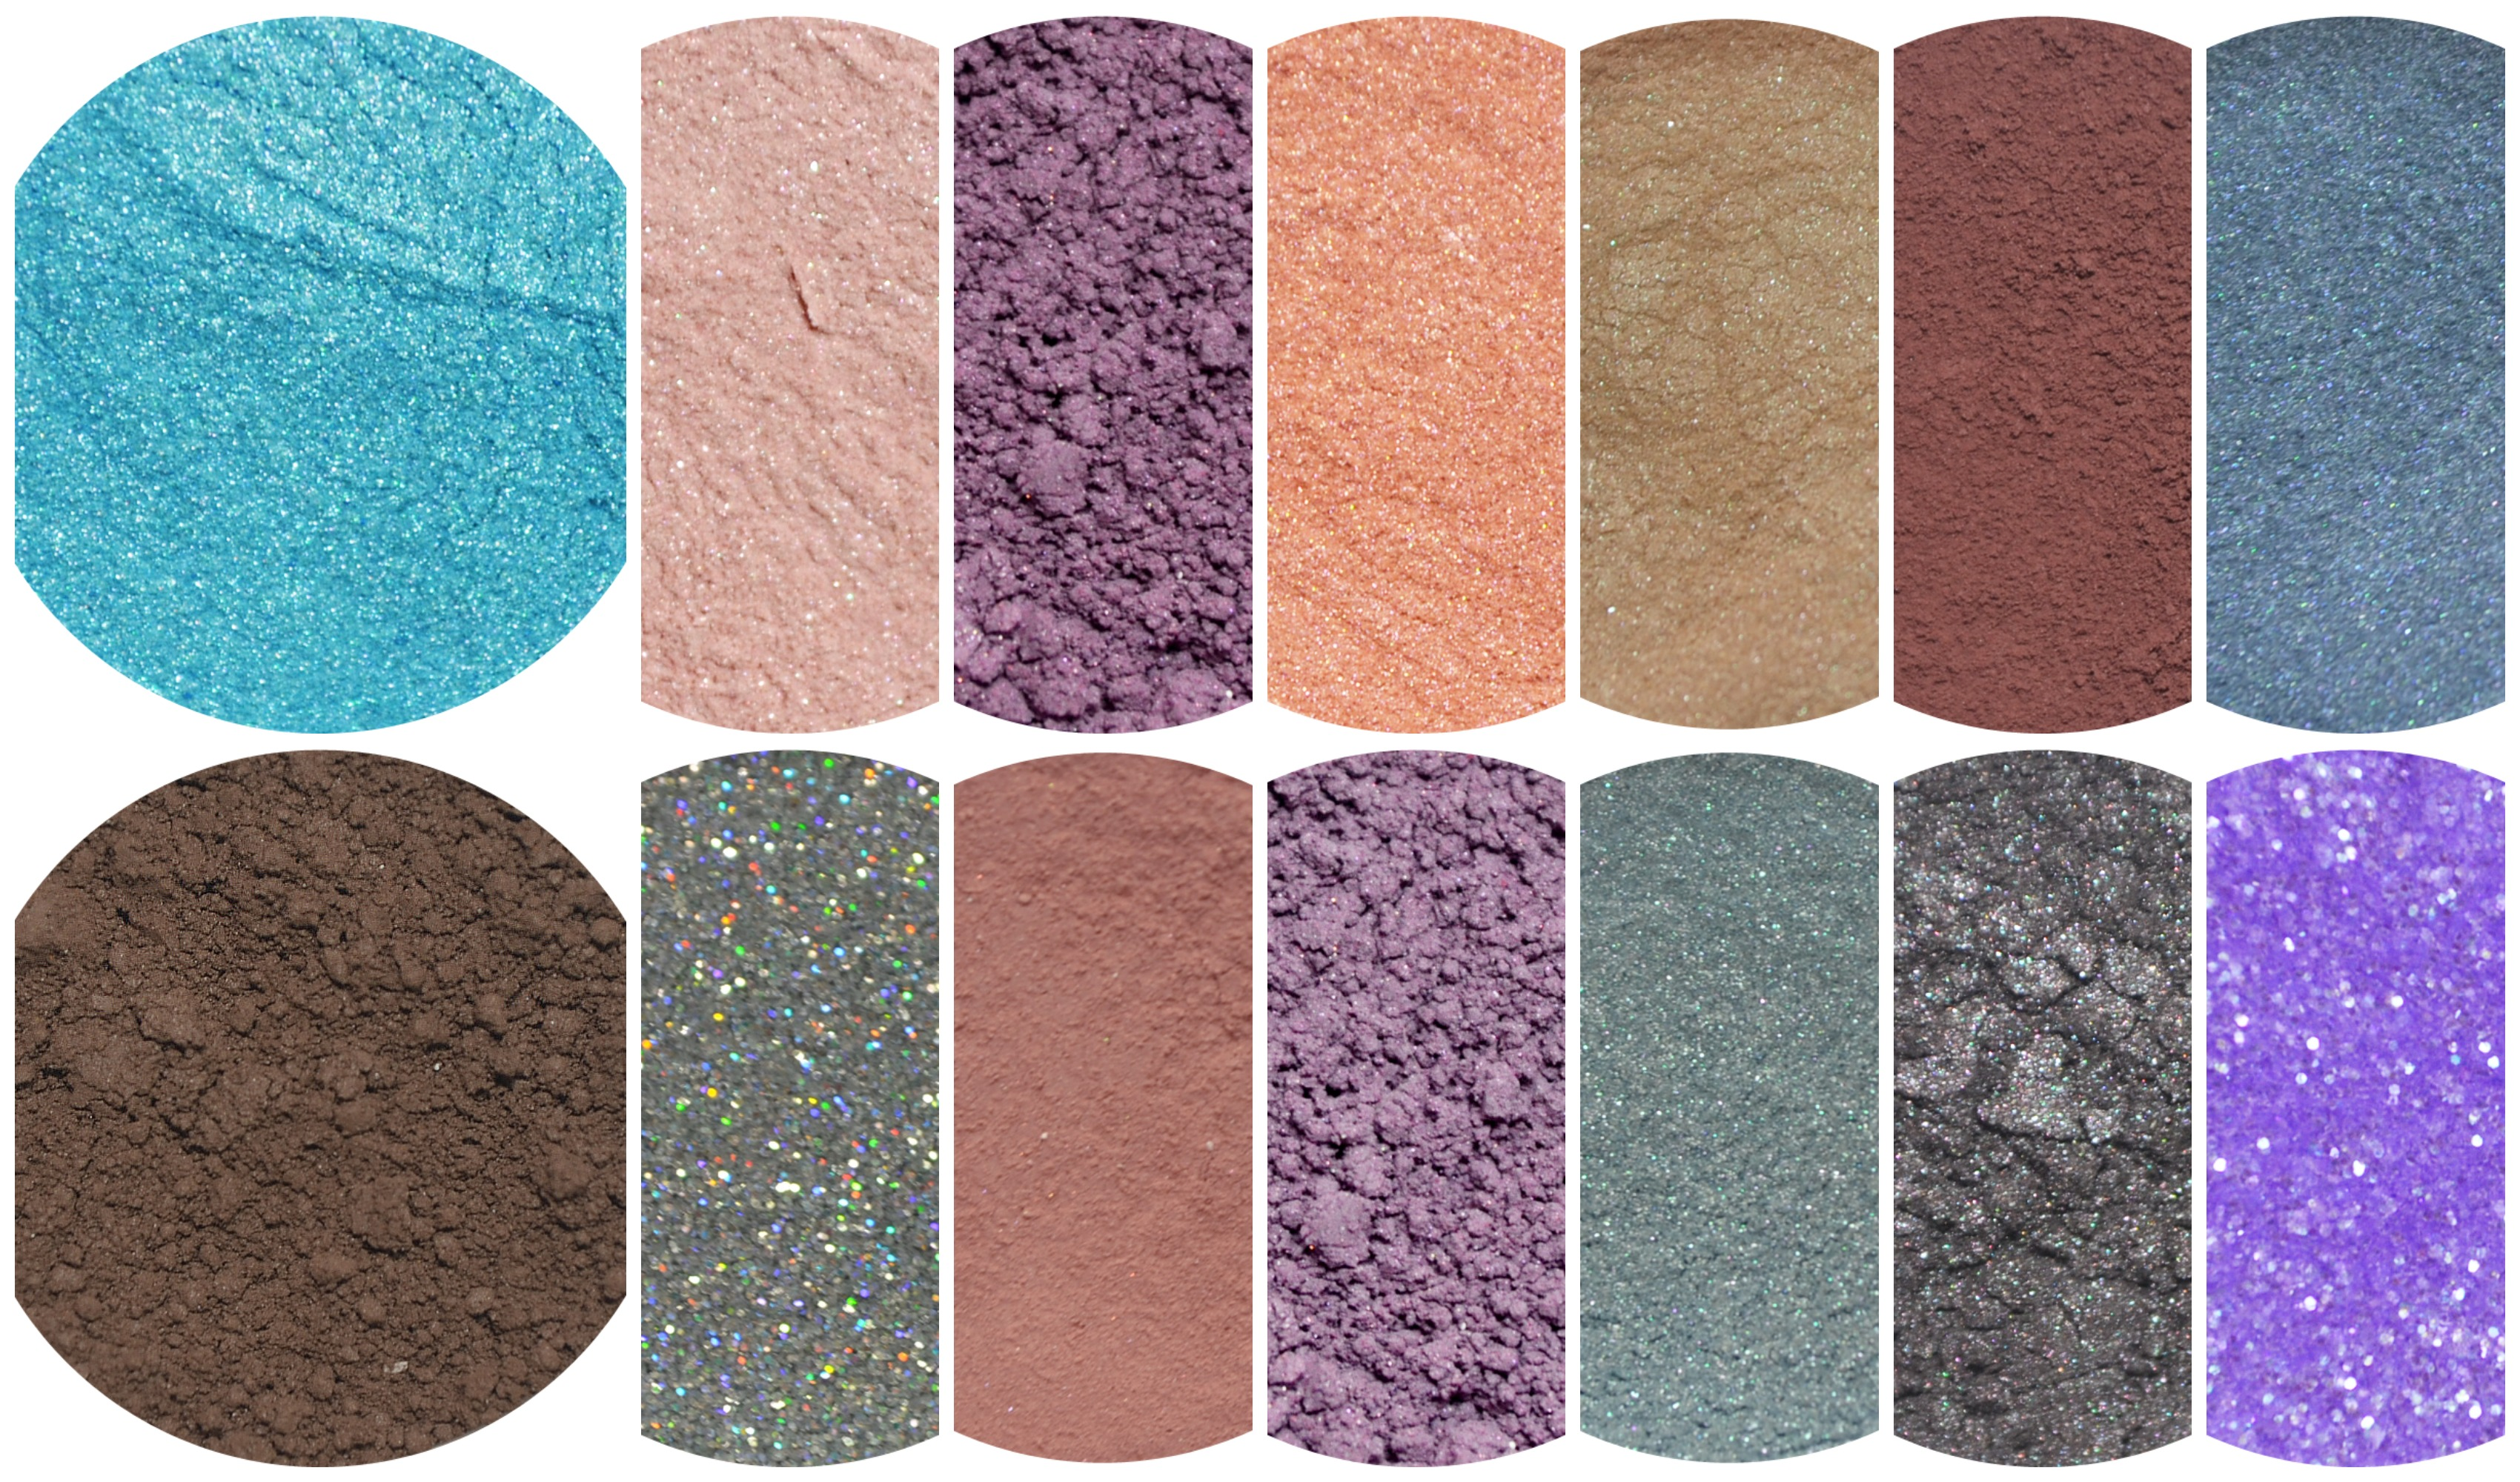 Virginia Olsen Eyeshadow Palette